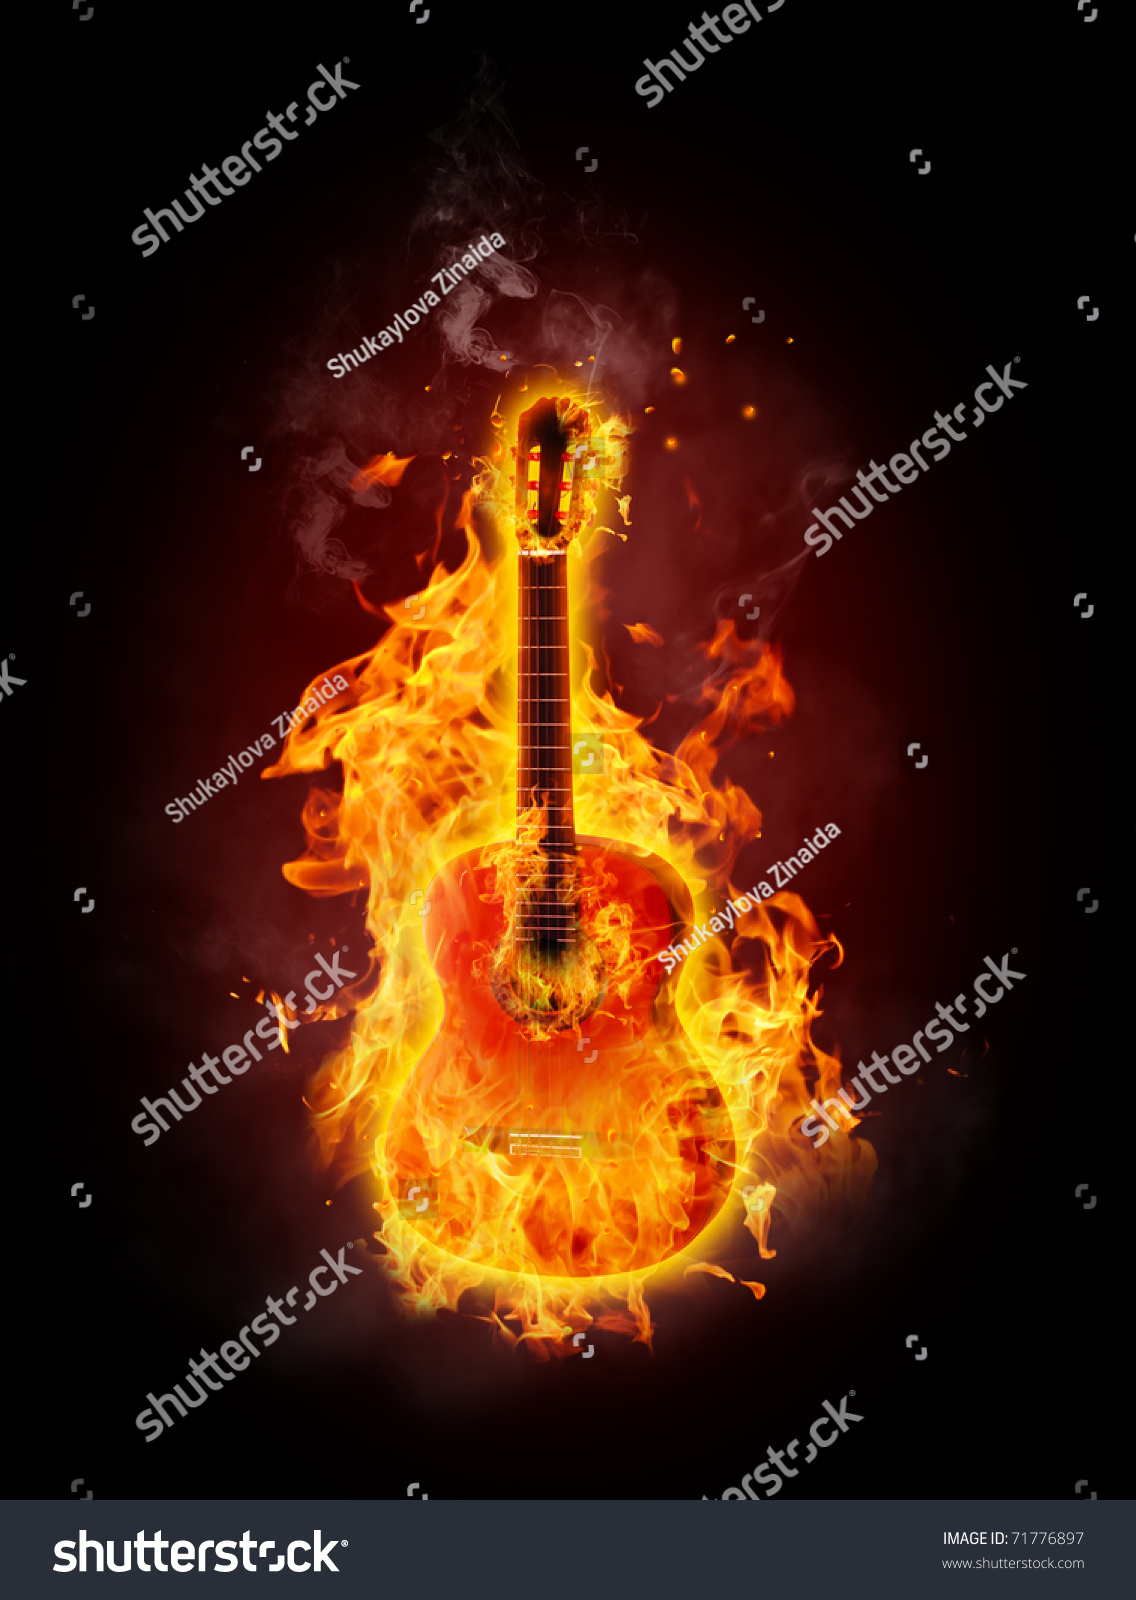 guitar acoustic fire flame - photo #5